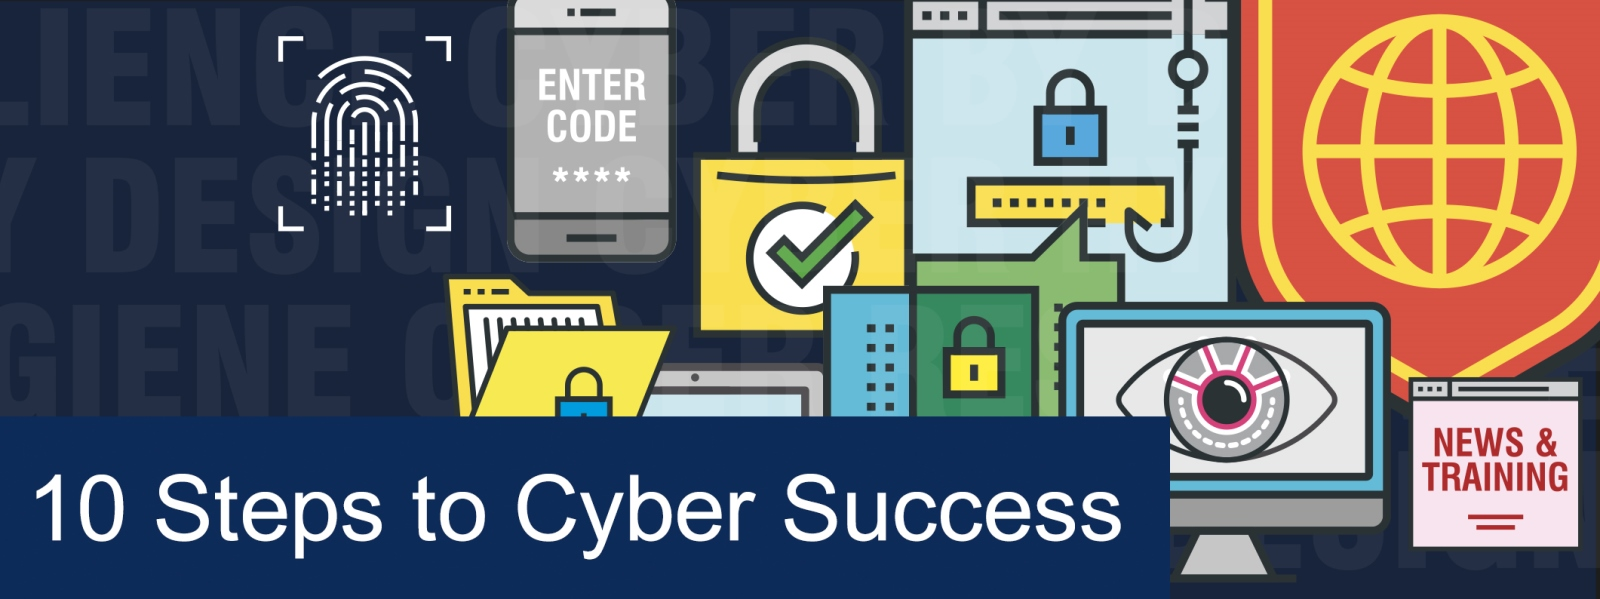 10 Steps to Cyber Success